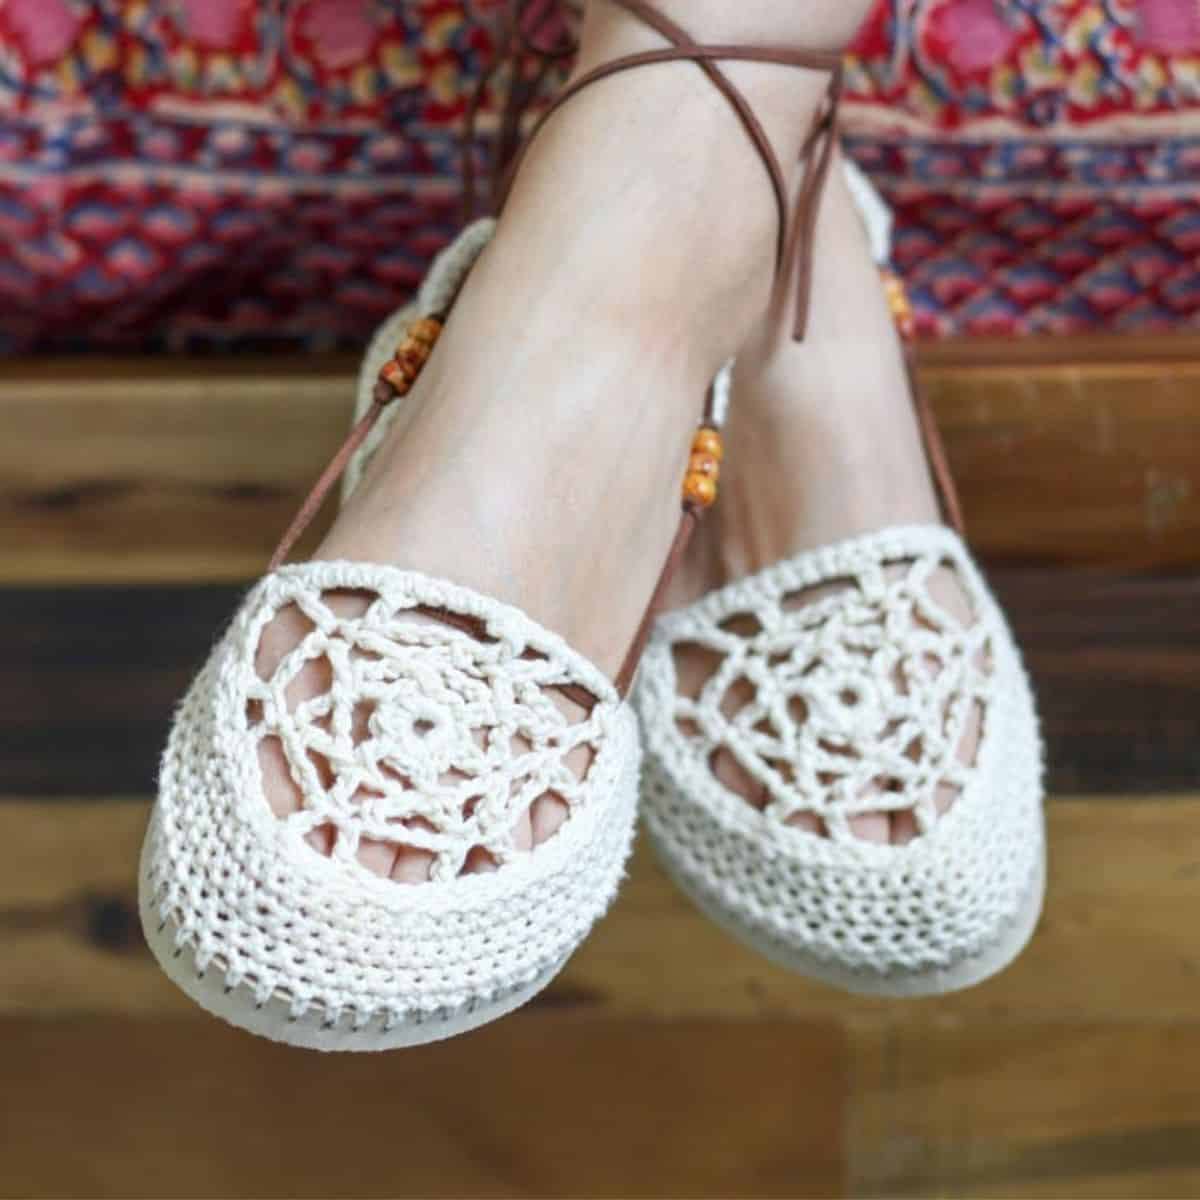 lacy cotton crochet shoes on feet